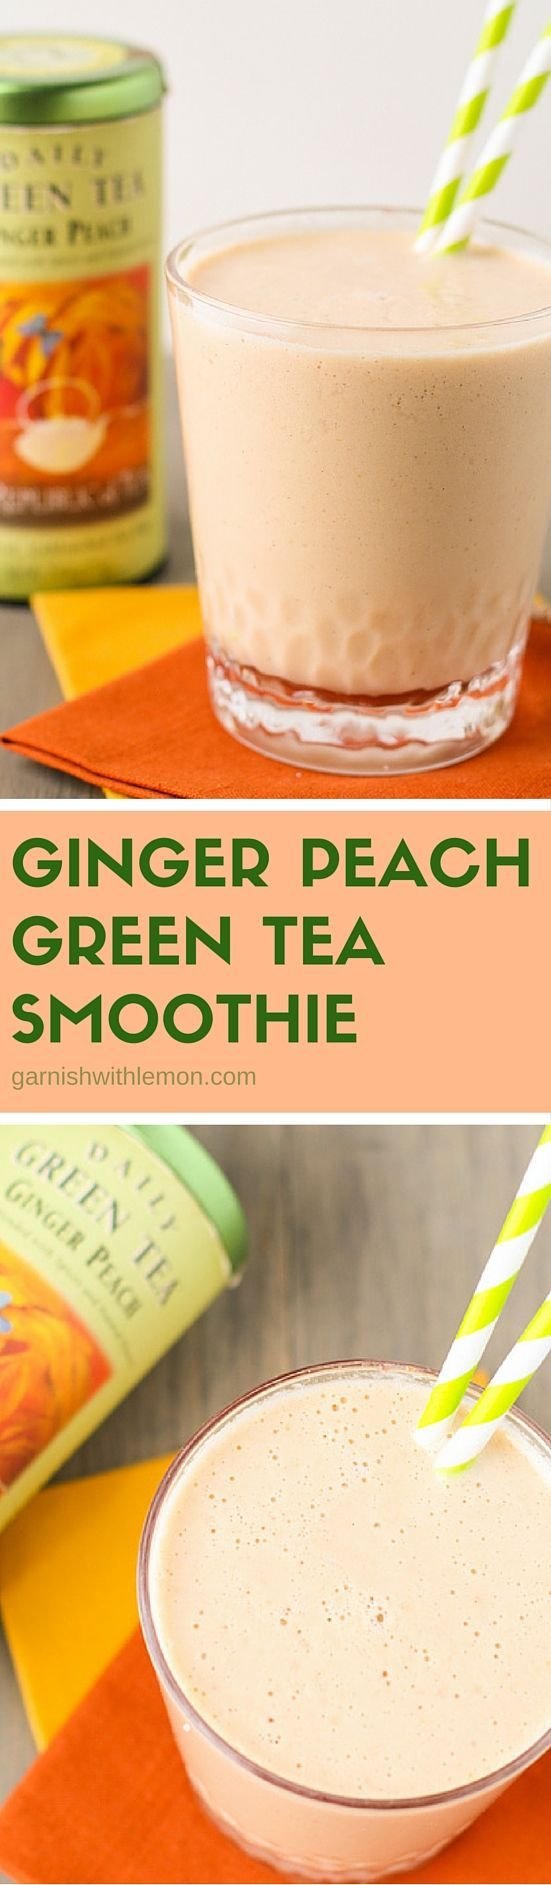 This quick and refreshing Ginger Peach Green Tea Smoothie is packed with healthy antioxidants plus it has a subtle kick from freshly grated ginger.